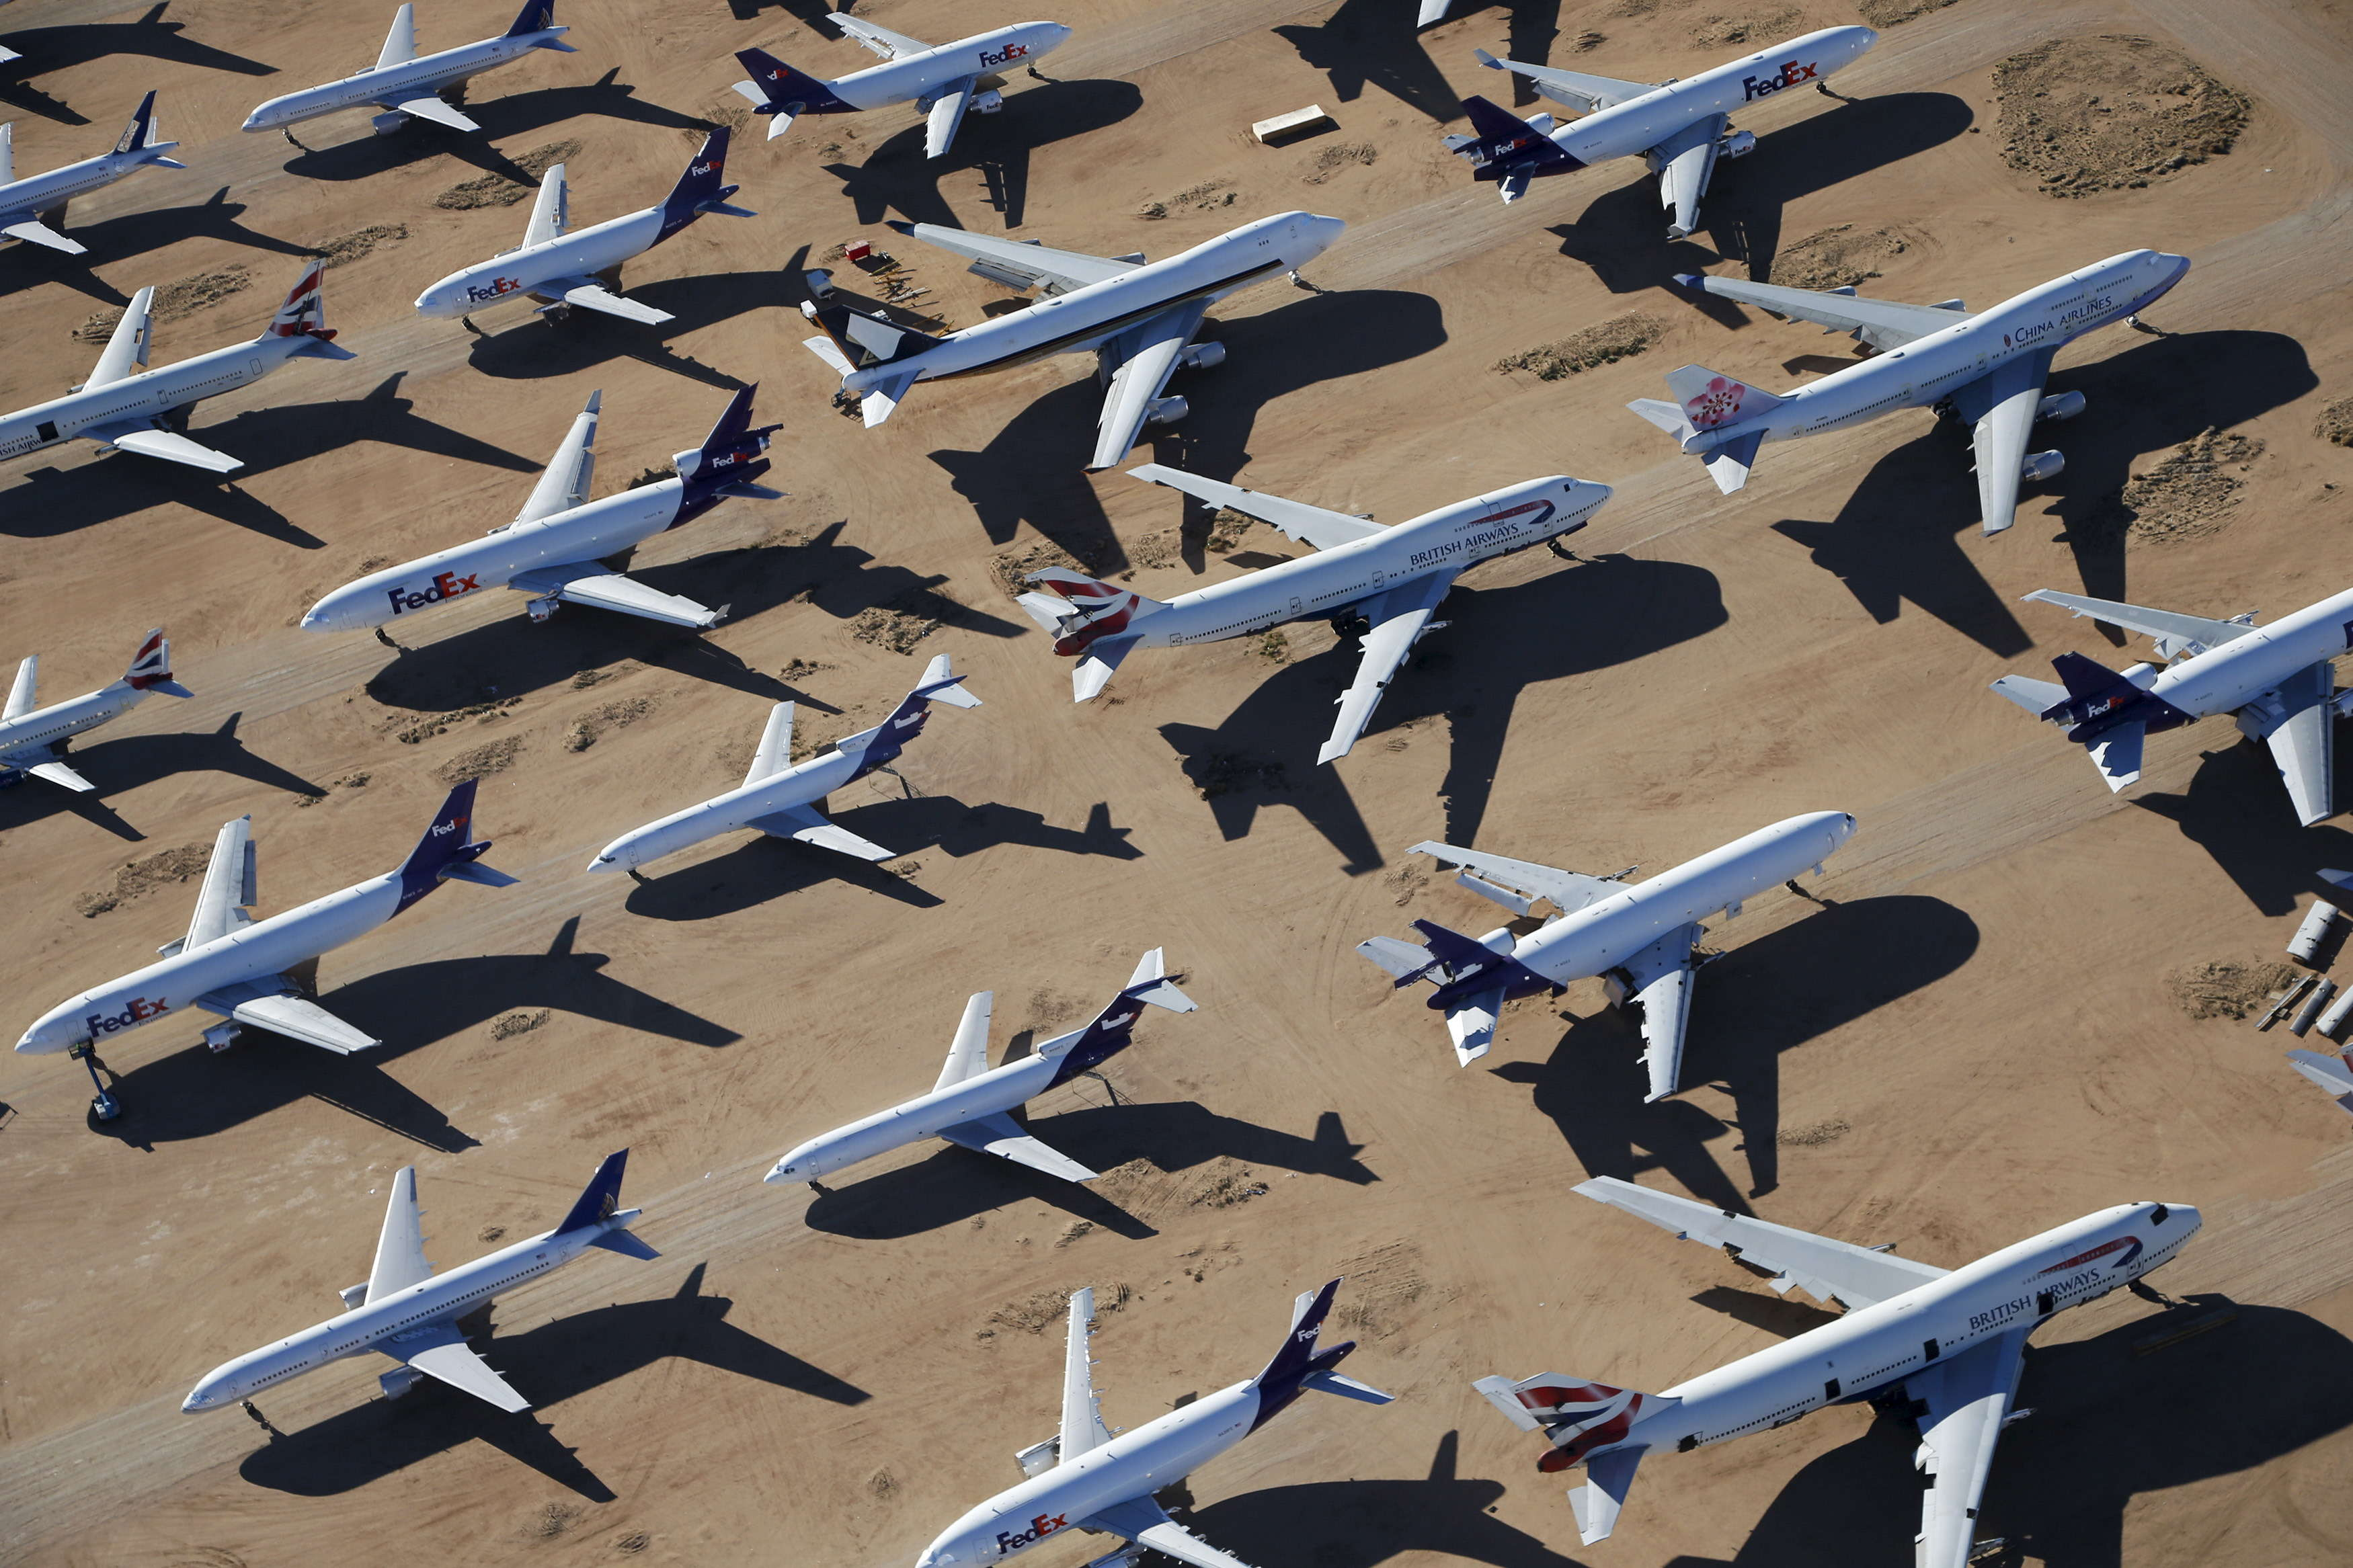 The airline has a massive fleet of more than 50 747-400s.